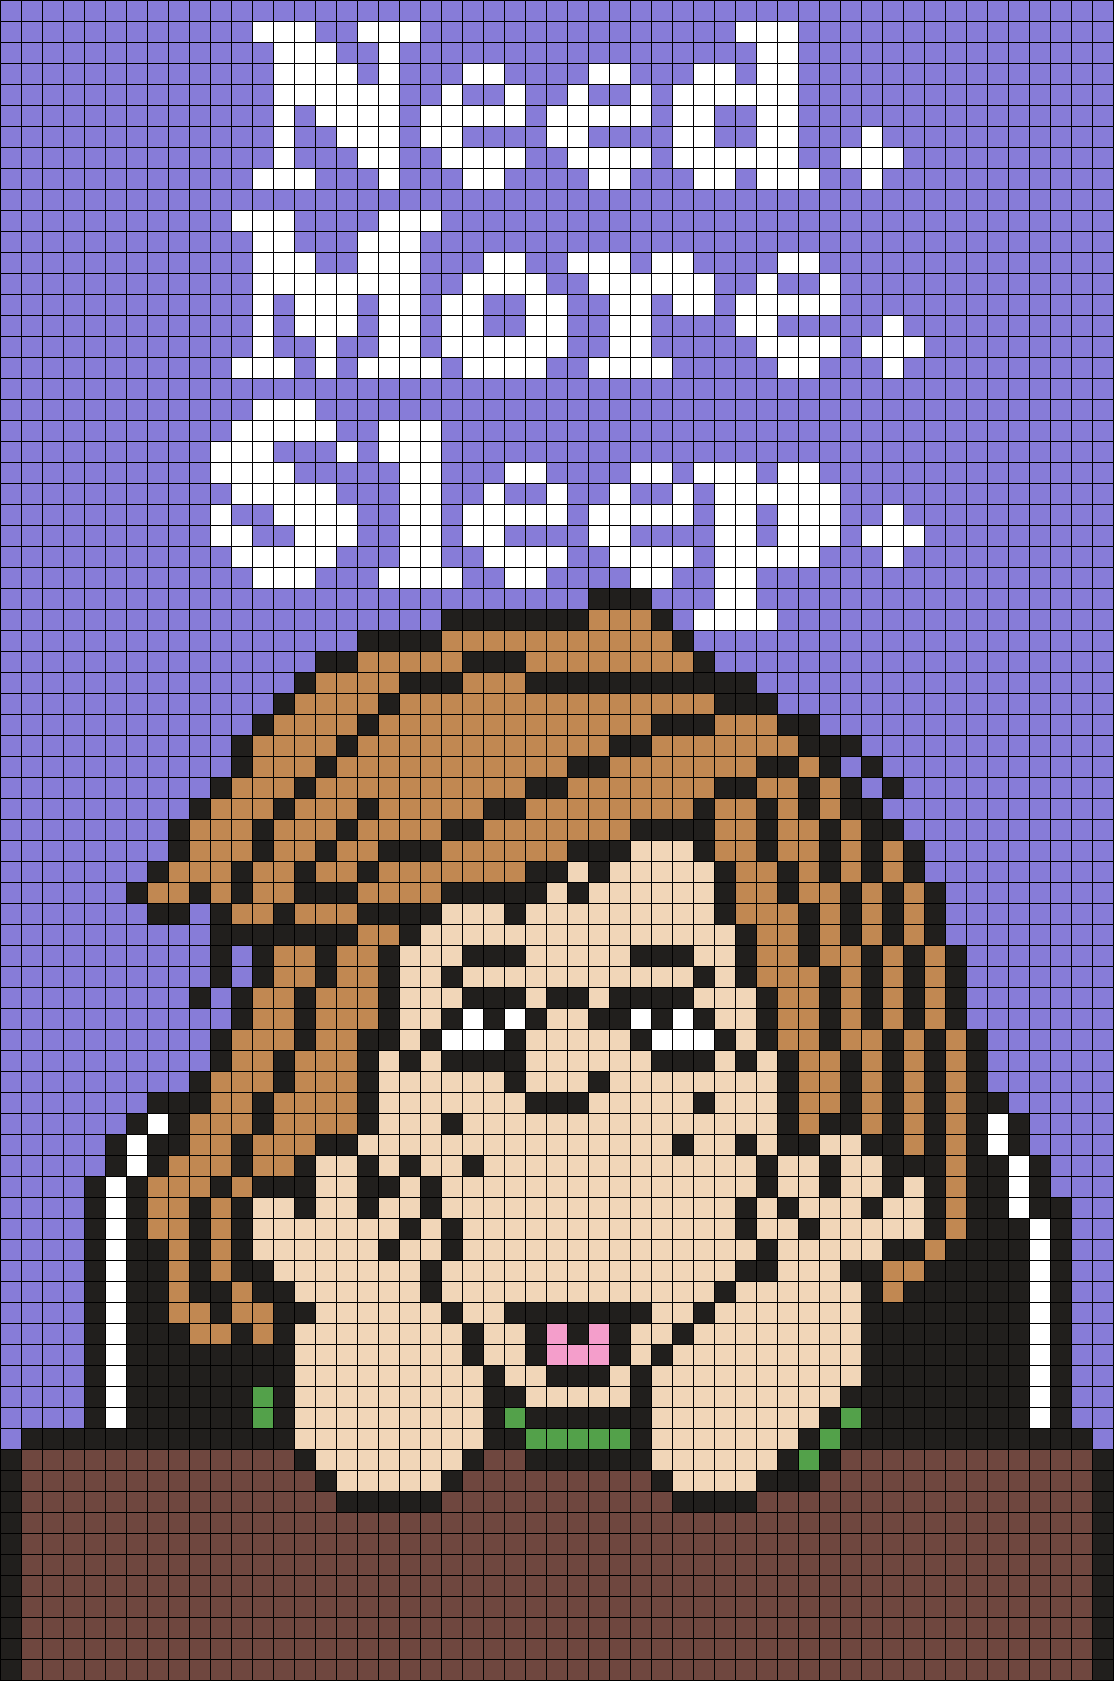 Peppermint_Patty_from_Peanuts_Need_More_Sleep_Poster